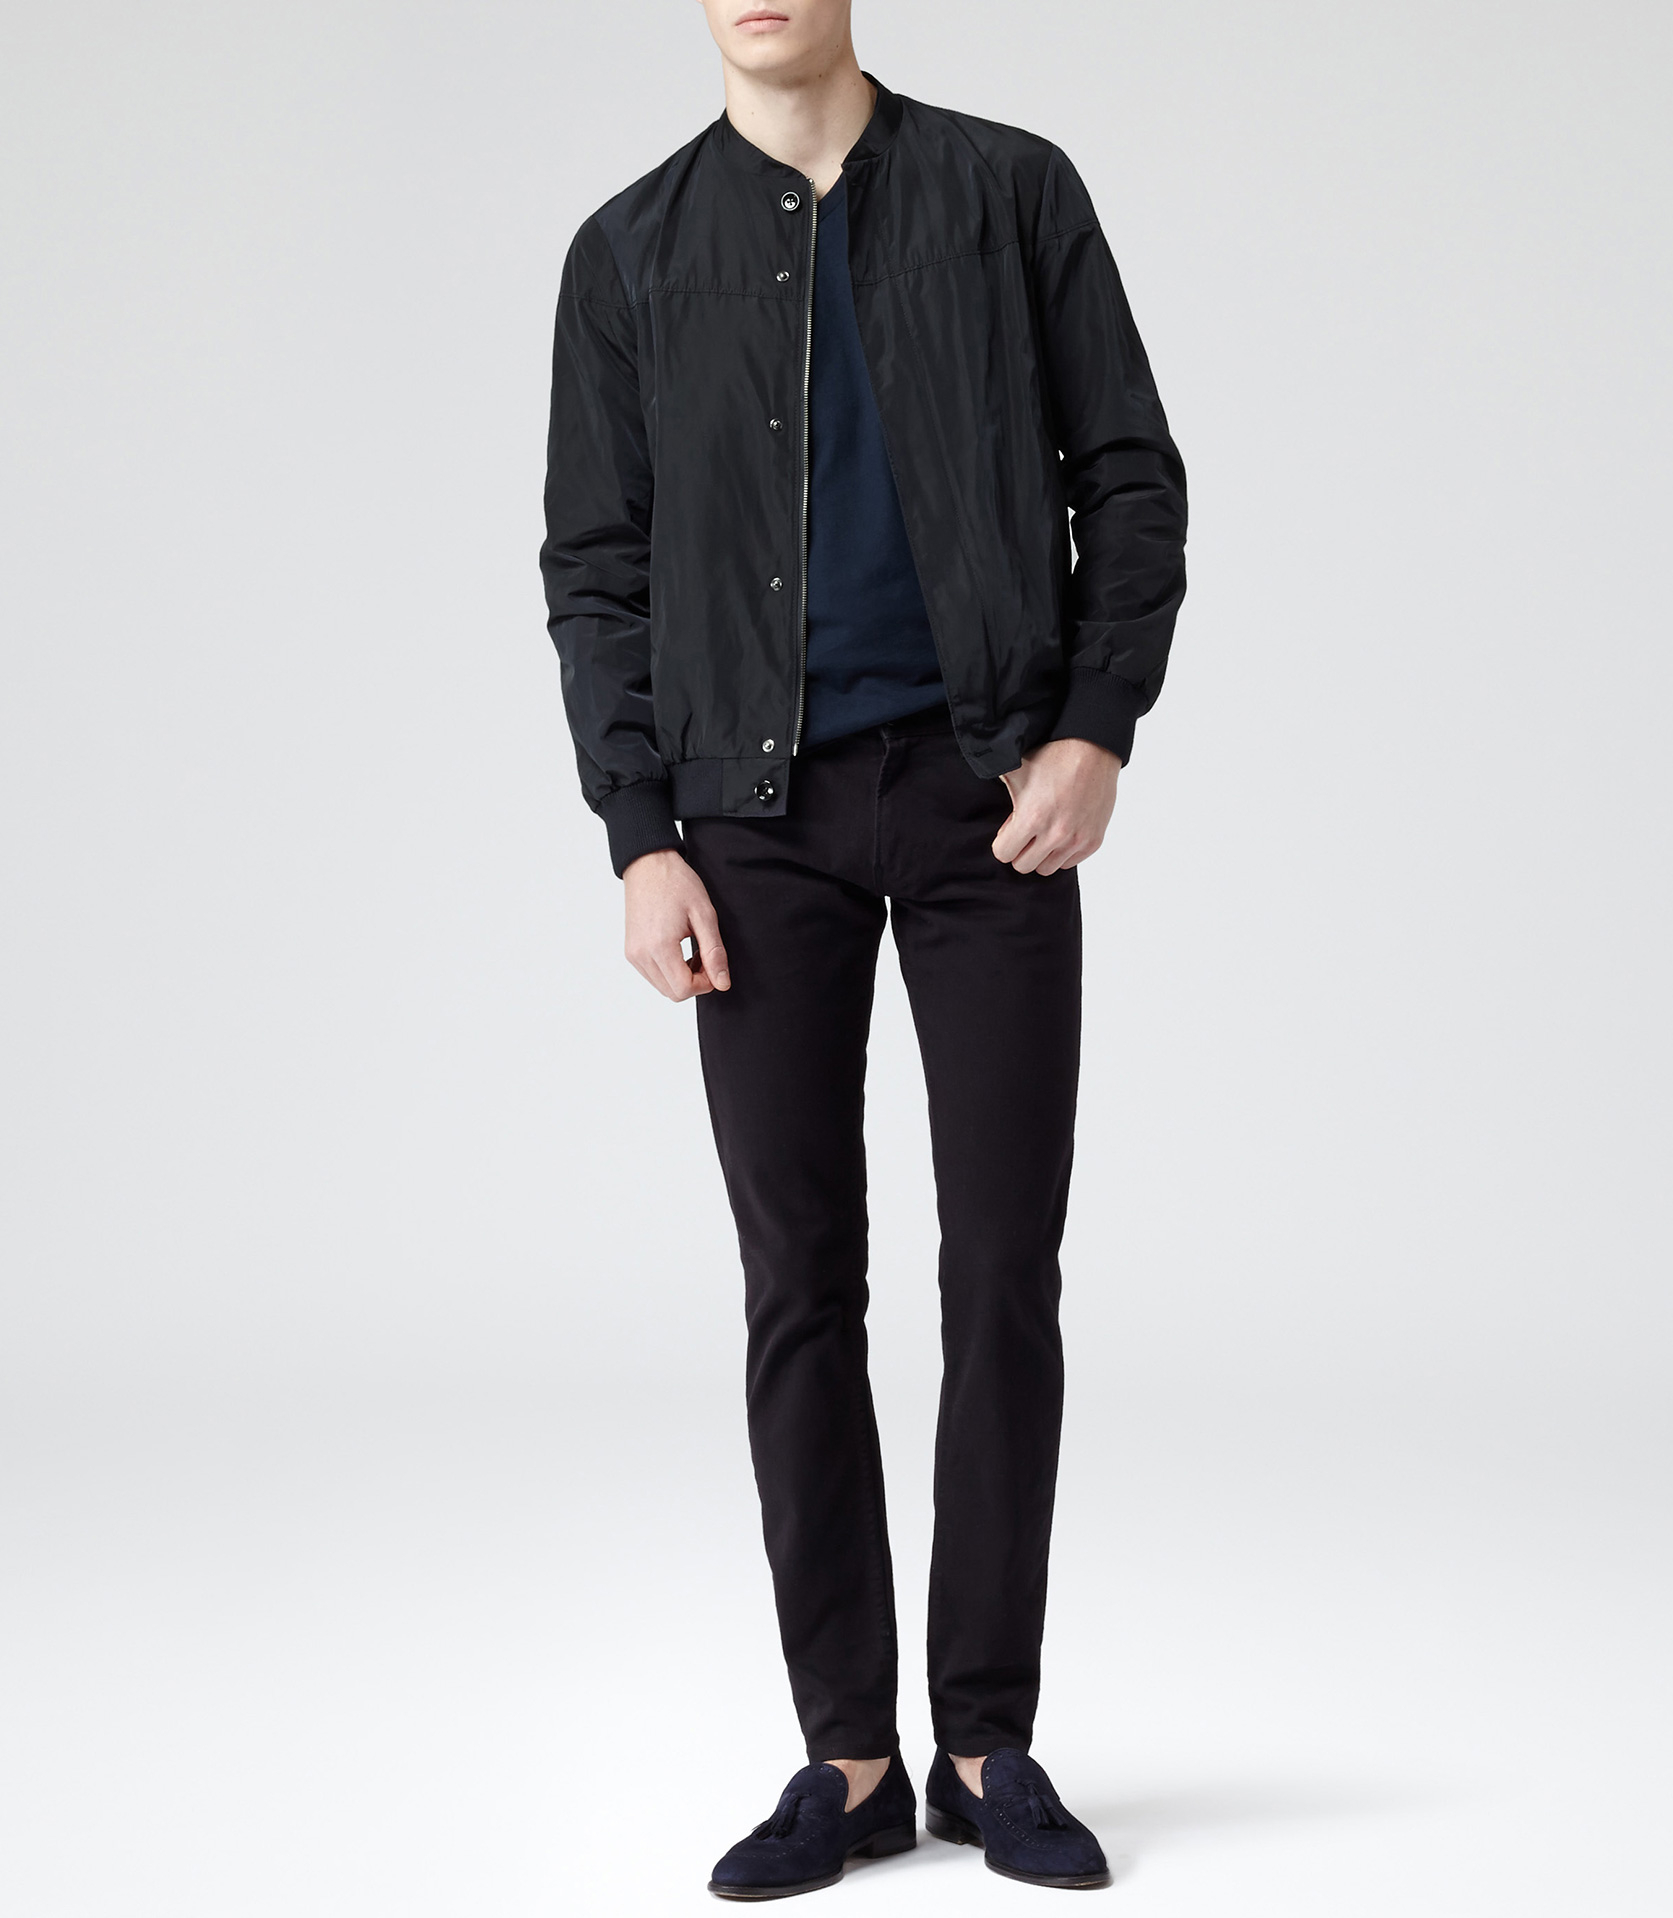 Reiss Sonic Ligthweight Bomber Jacket in Dark Navy (Blue) for Men